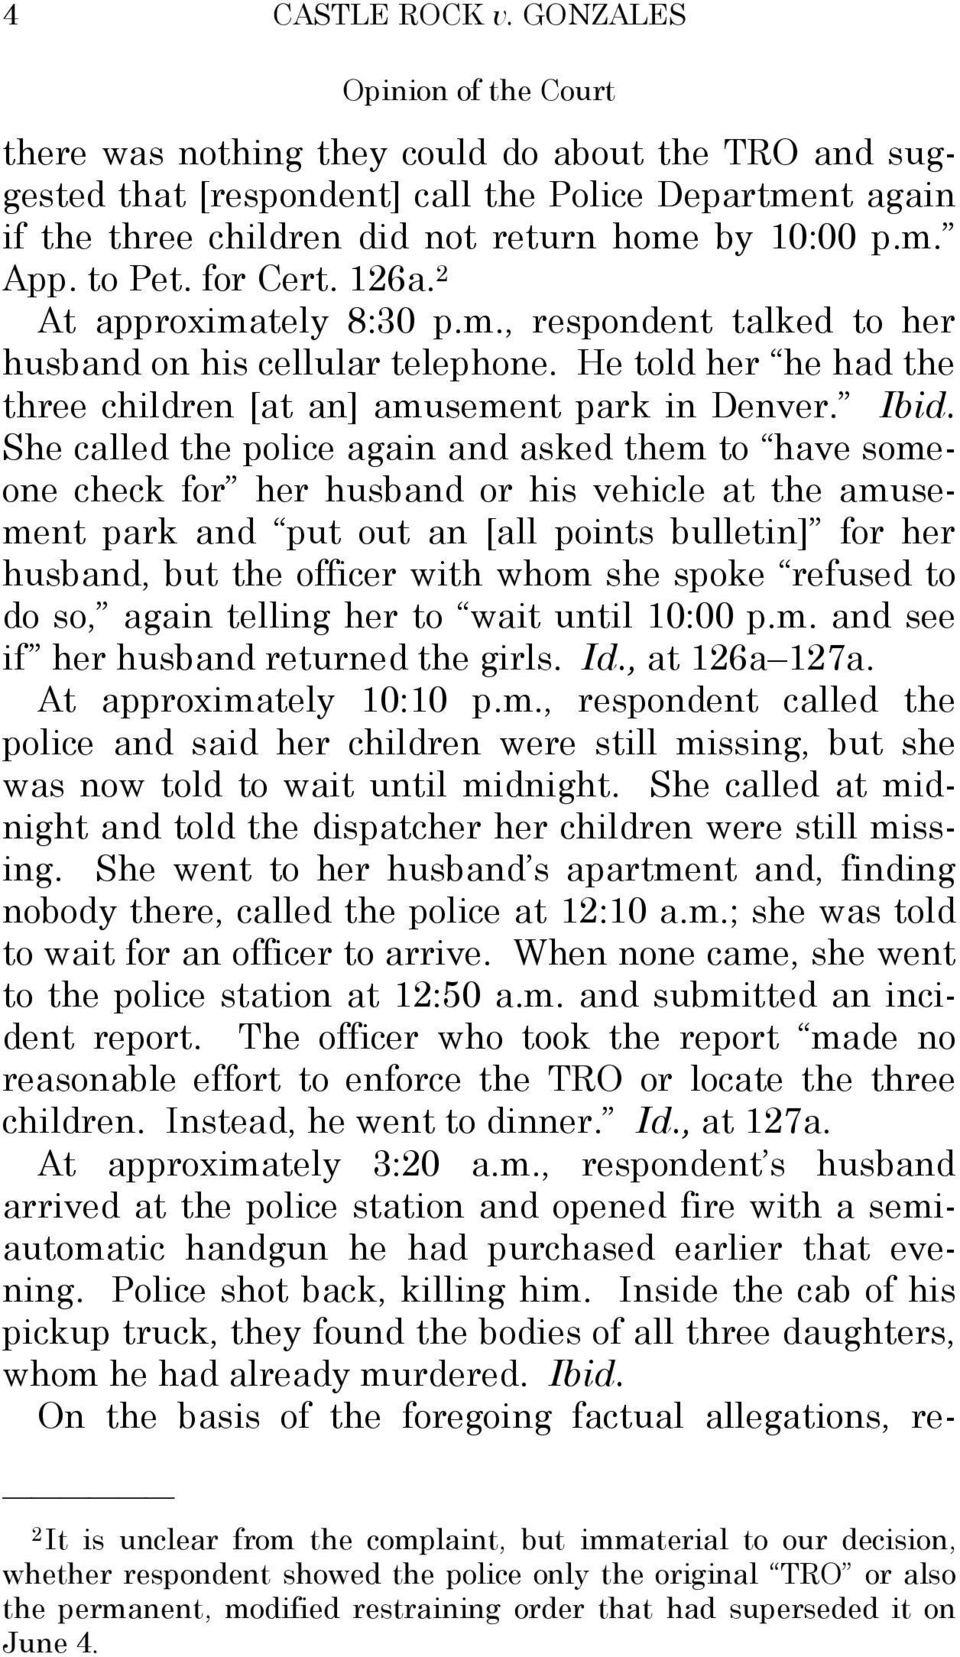 to Pet. for Cert. 126a. 2 At approximately 8:30 p.m., respondent talked to her husband on his cellular telephone. He told her he had the three children [at an] amusement park in Denver. Ibid.